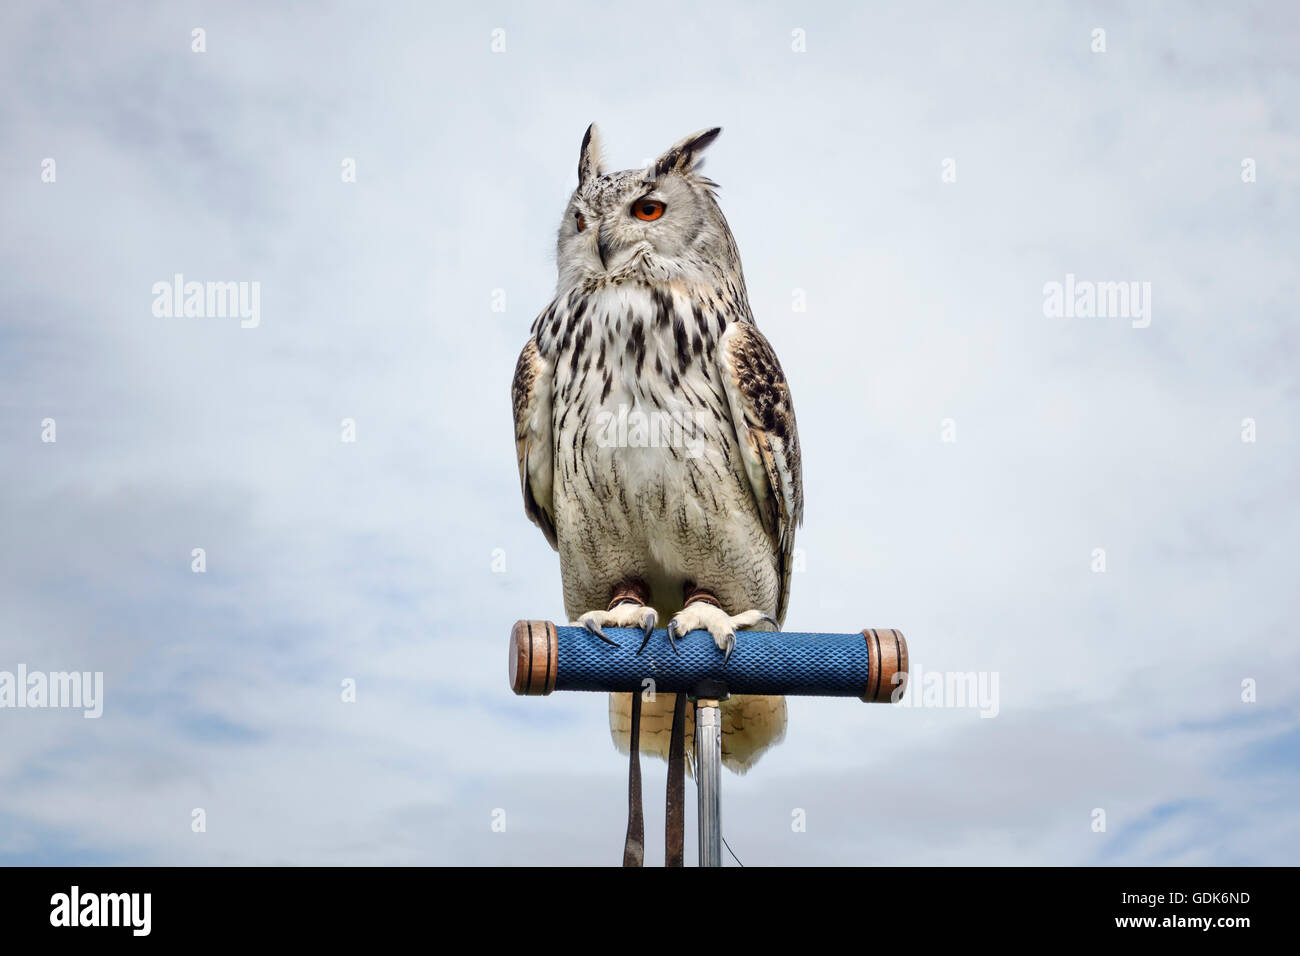 A Siberian Eagle Owl (Bubo bubo sibiricus) at a falconry display in the UK. - Stock Image